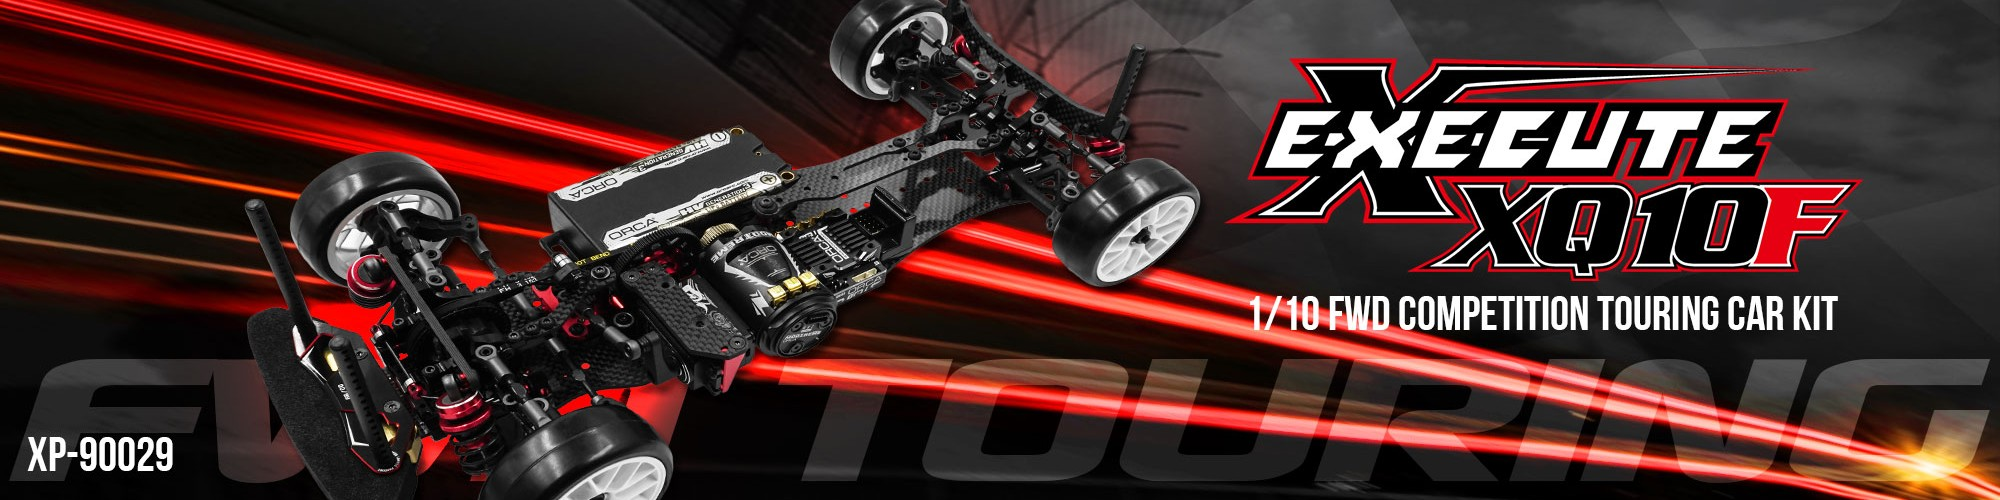 EXECUTE XQ10F 1/10 FWD COMPETITION TOURING CAR KIT